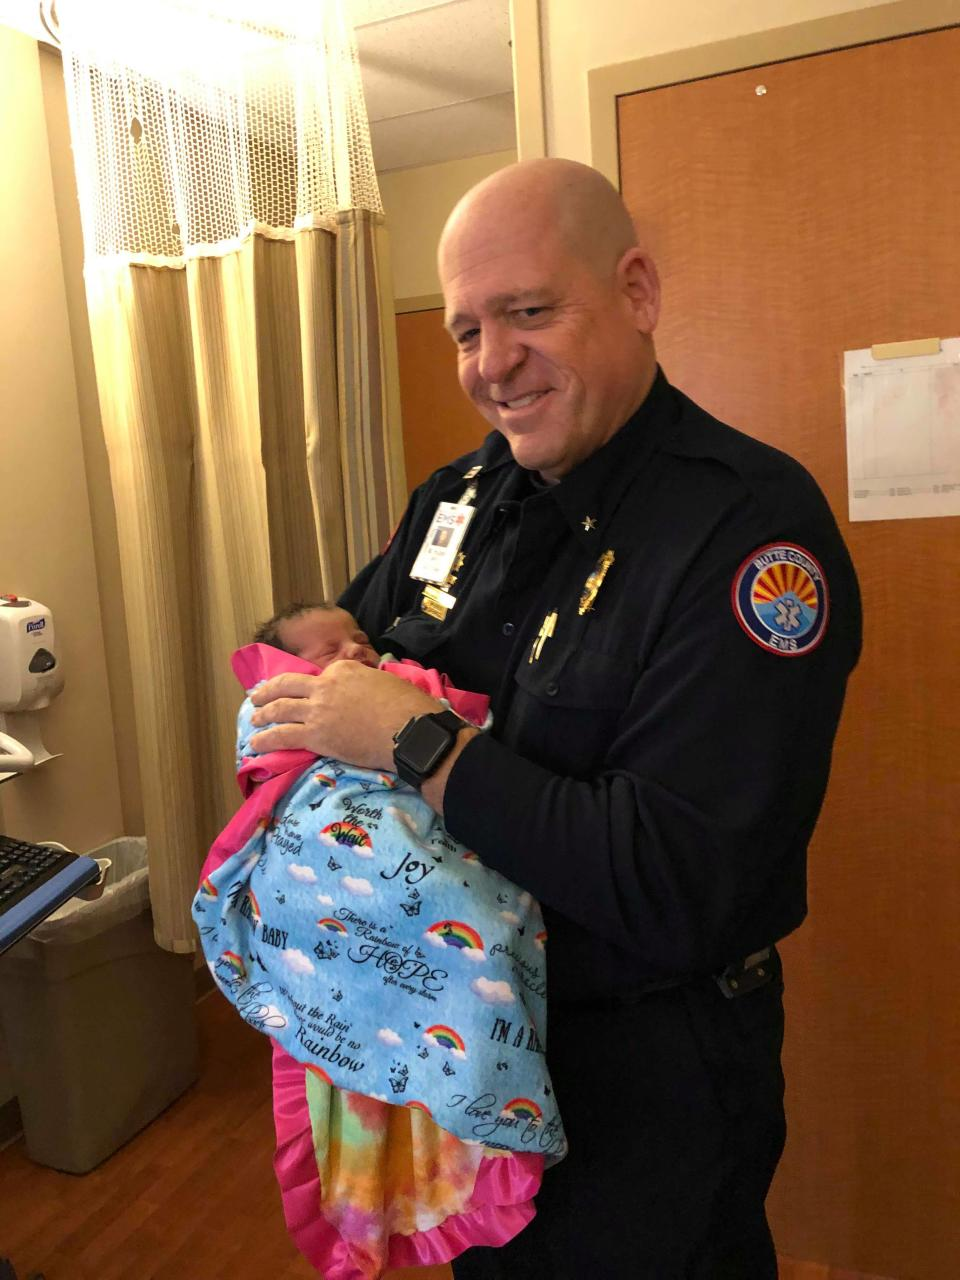 Mickey Huber meets the baby whose mother's life he saved. (Photo Courtesy of Anastasia Skinner)